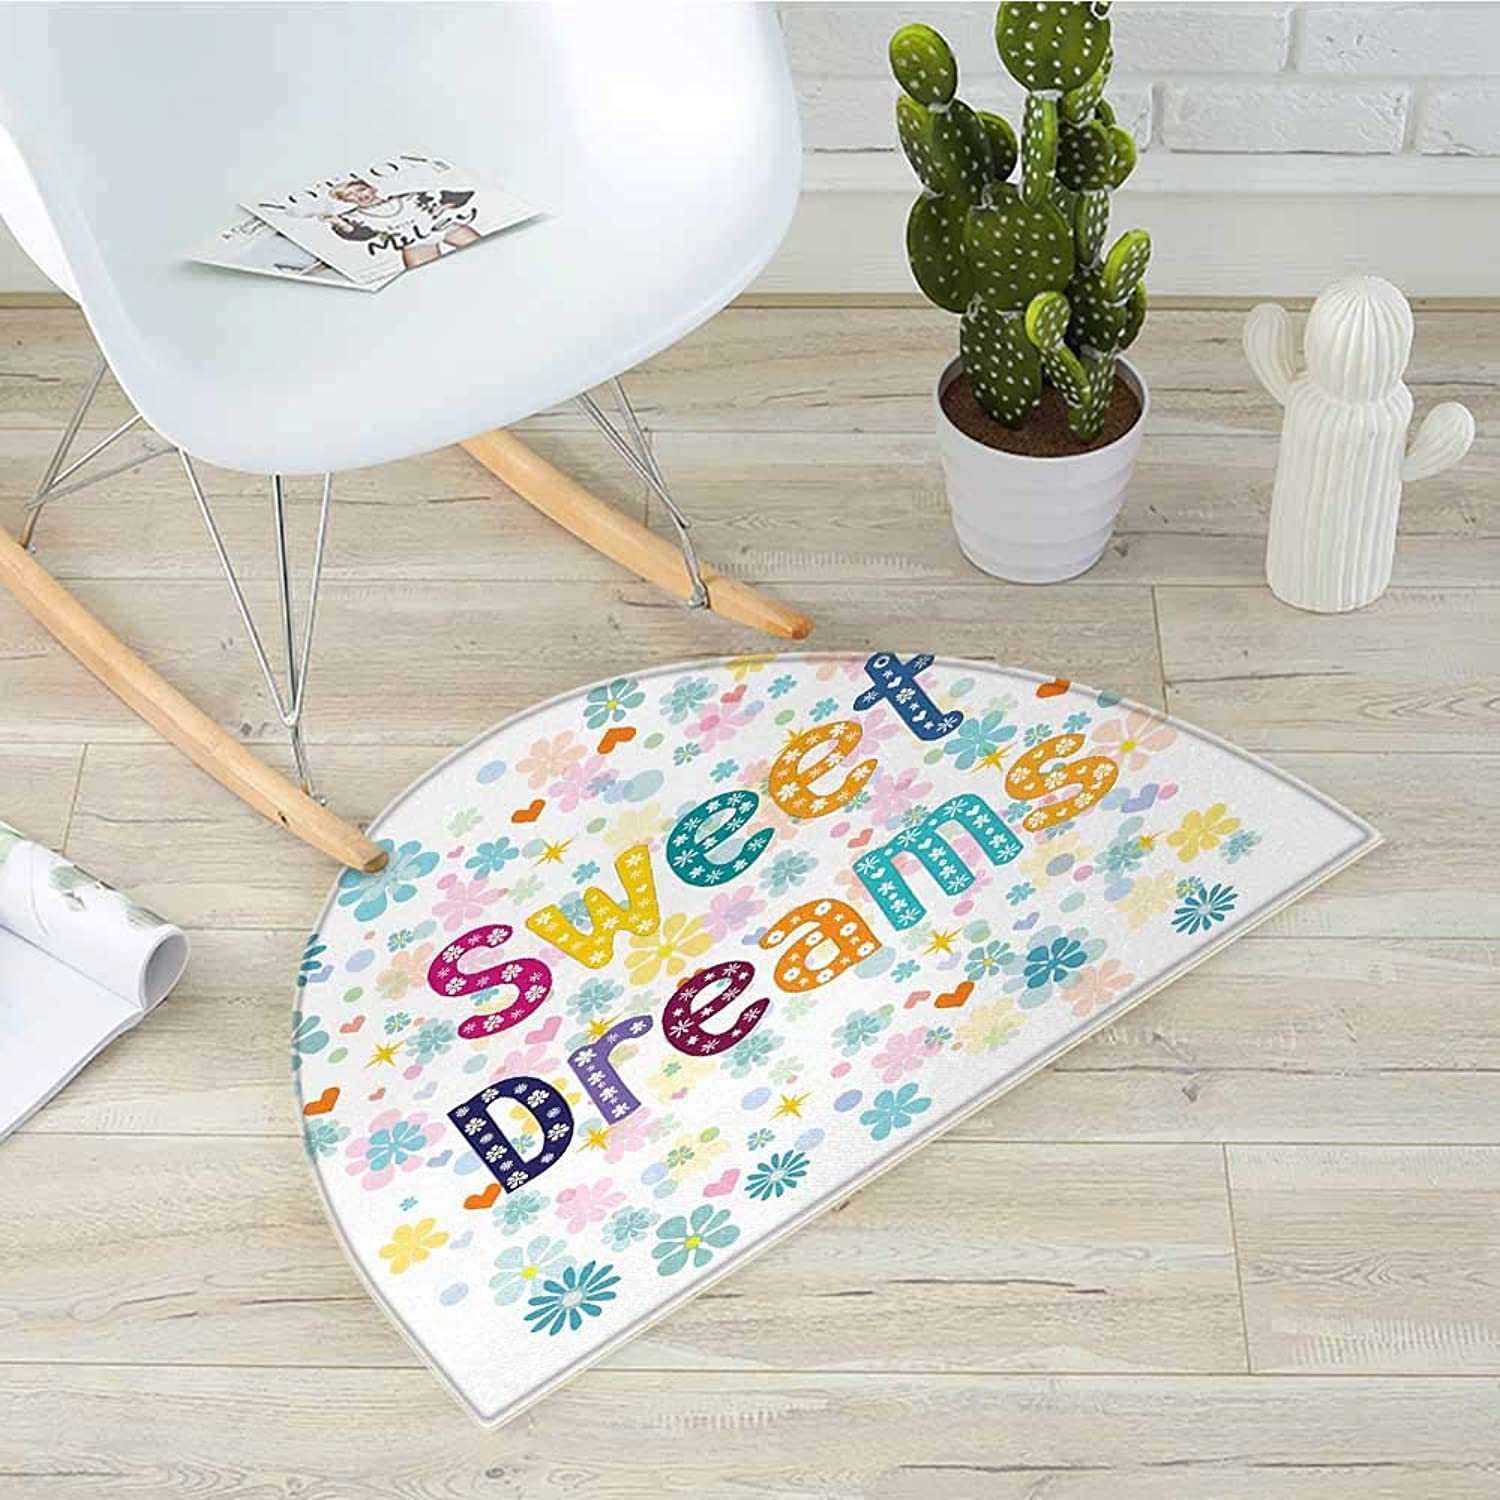 Sweet Dreams Half Round Door mats colorful Letters with Little Flowers on a Blossoming Background Slumber Party Bathroom Mat H 31.5  xD 47.2  Multicolor